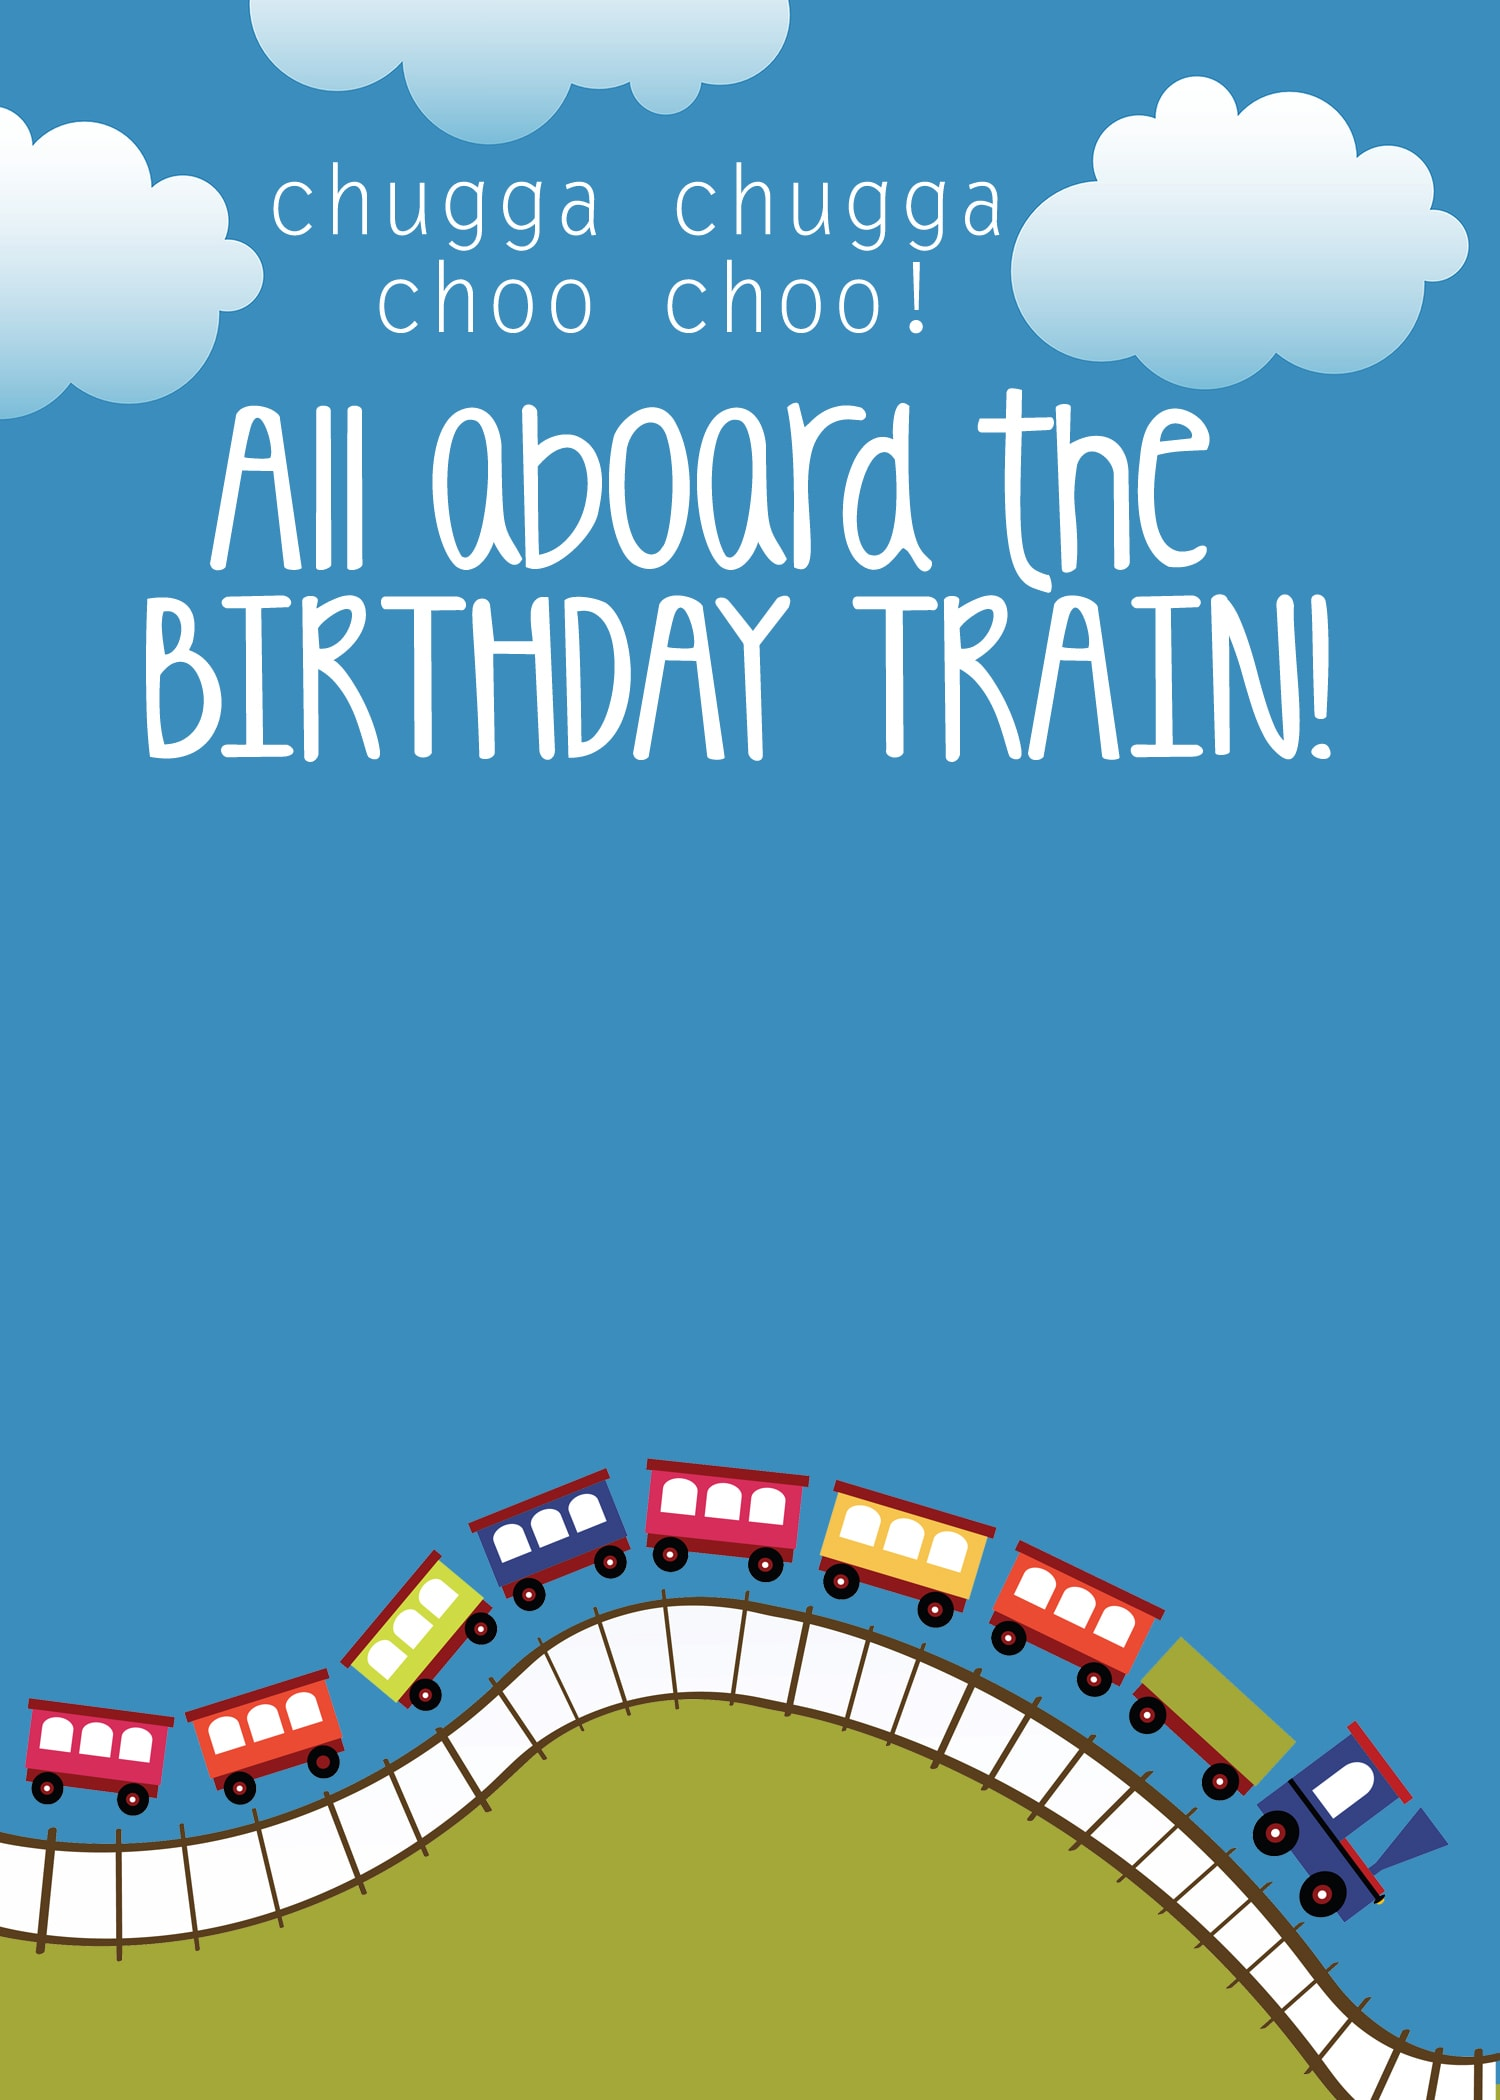 Train themed birthday party with free printables how to nest for less httpshowtonestforlesswp contentuploads201403train birthday party invitation templateg filmwisefo Images